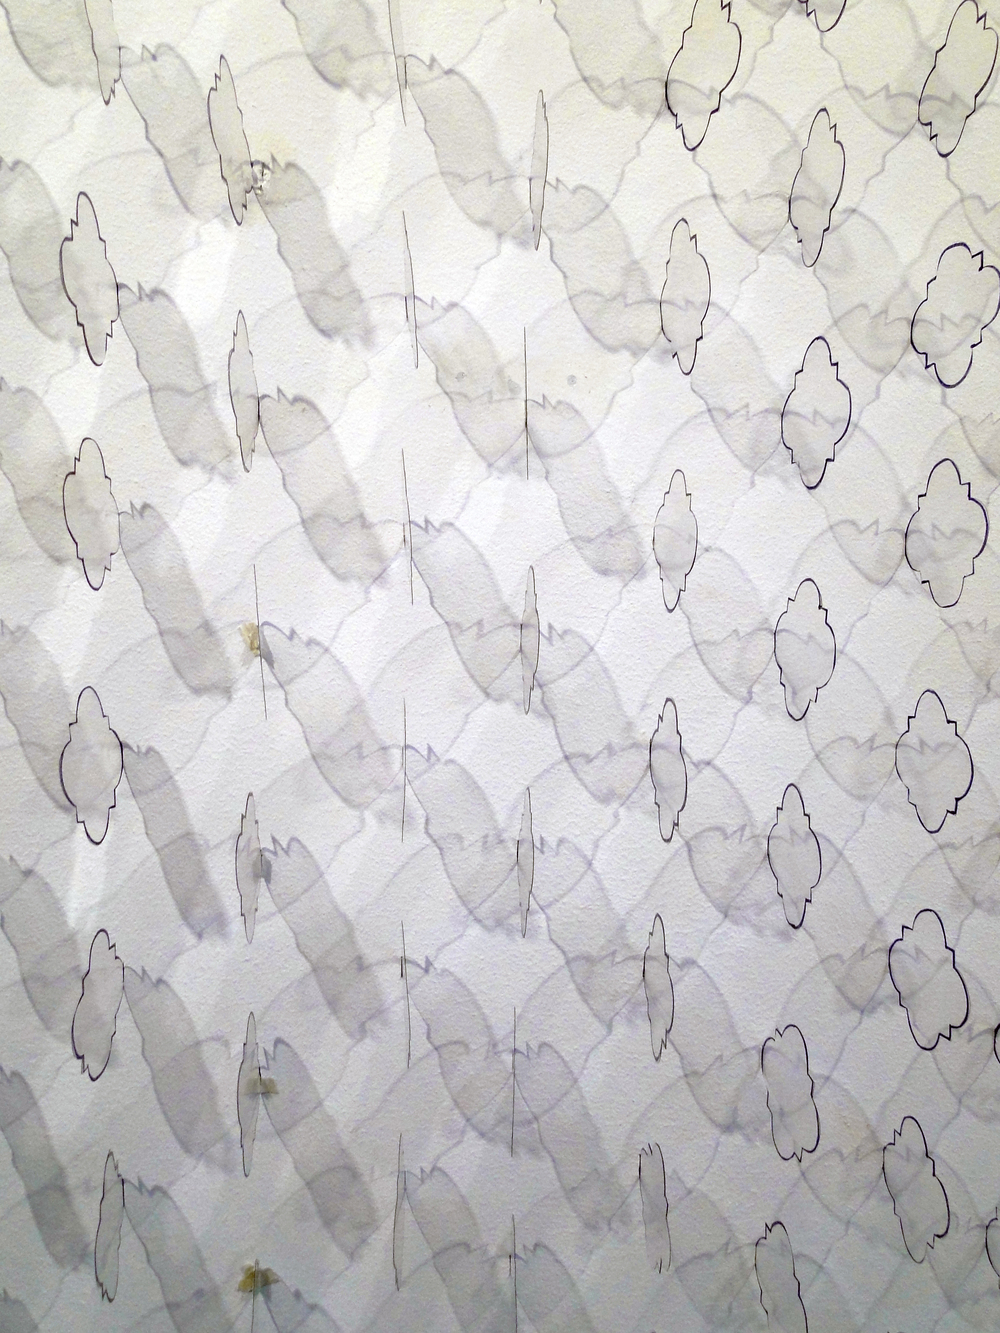 200 Quatrefoils 200 Acetate Quatrefoils and marker on cut dry wall. Site specific. 145 x 145 cm. 2014